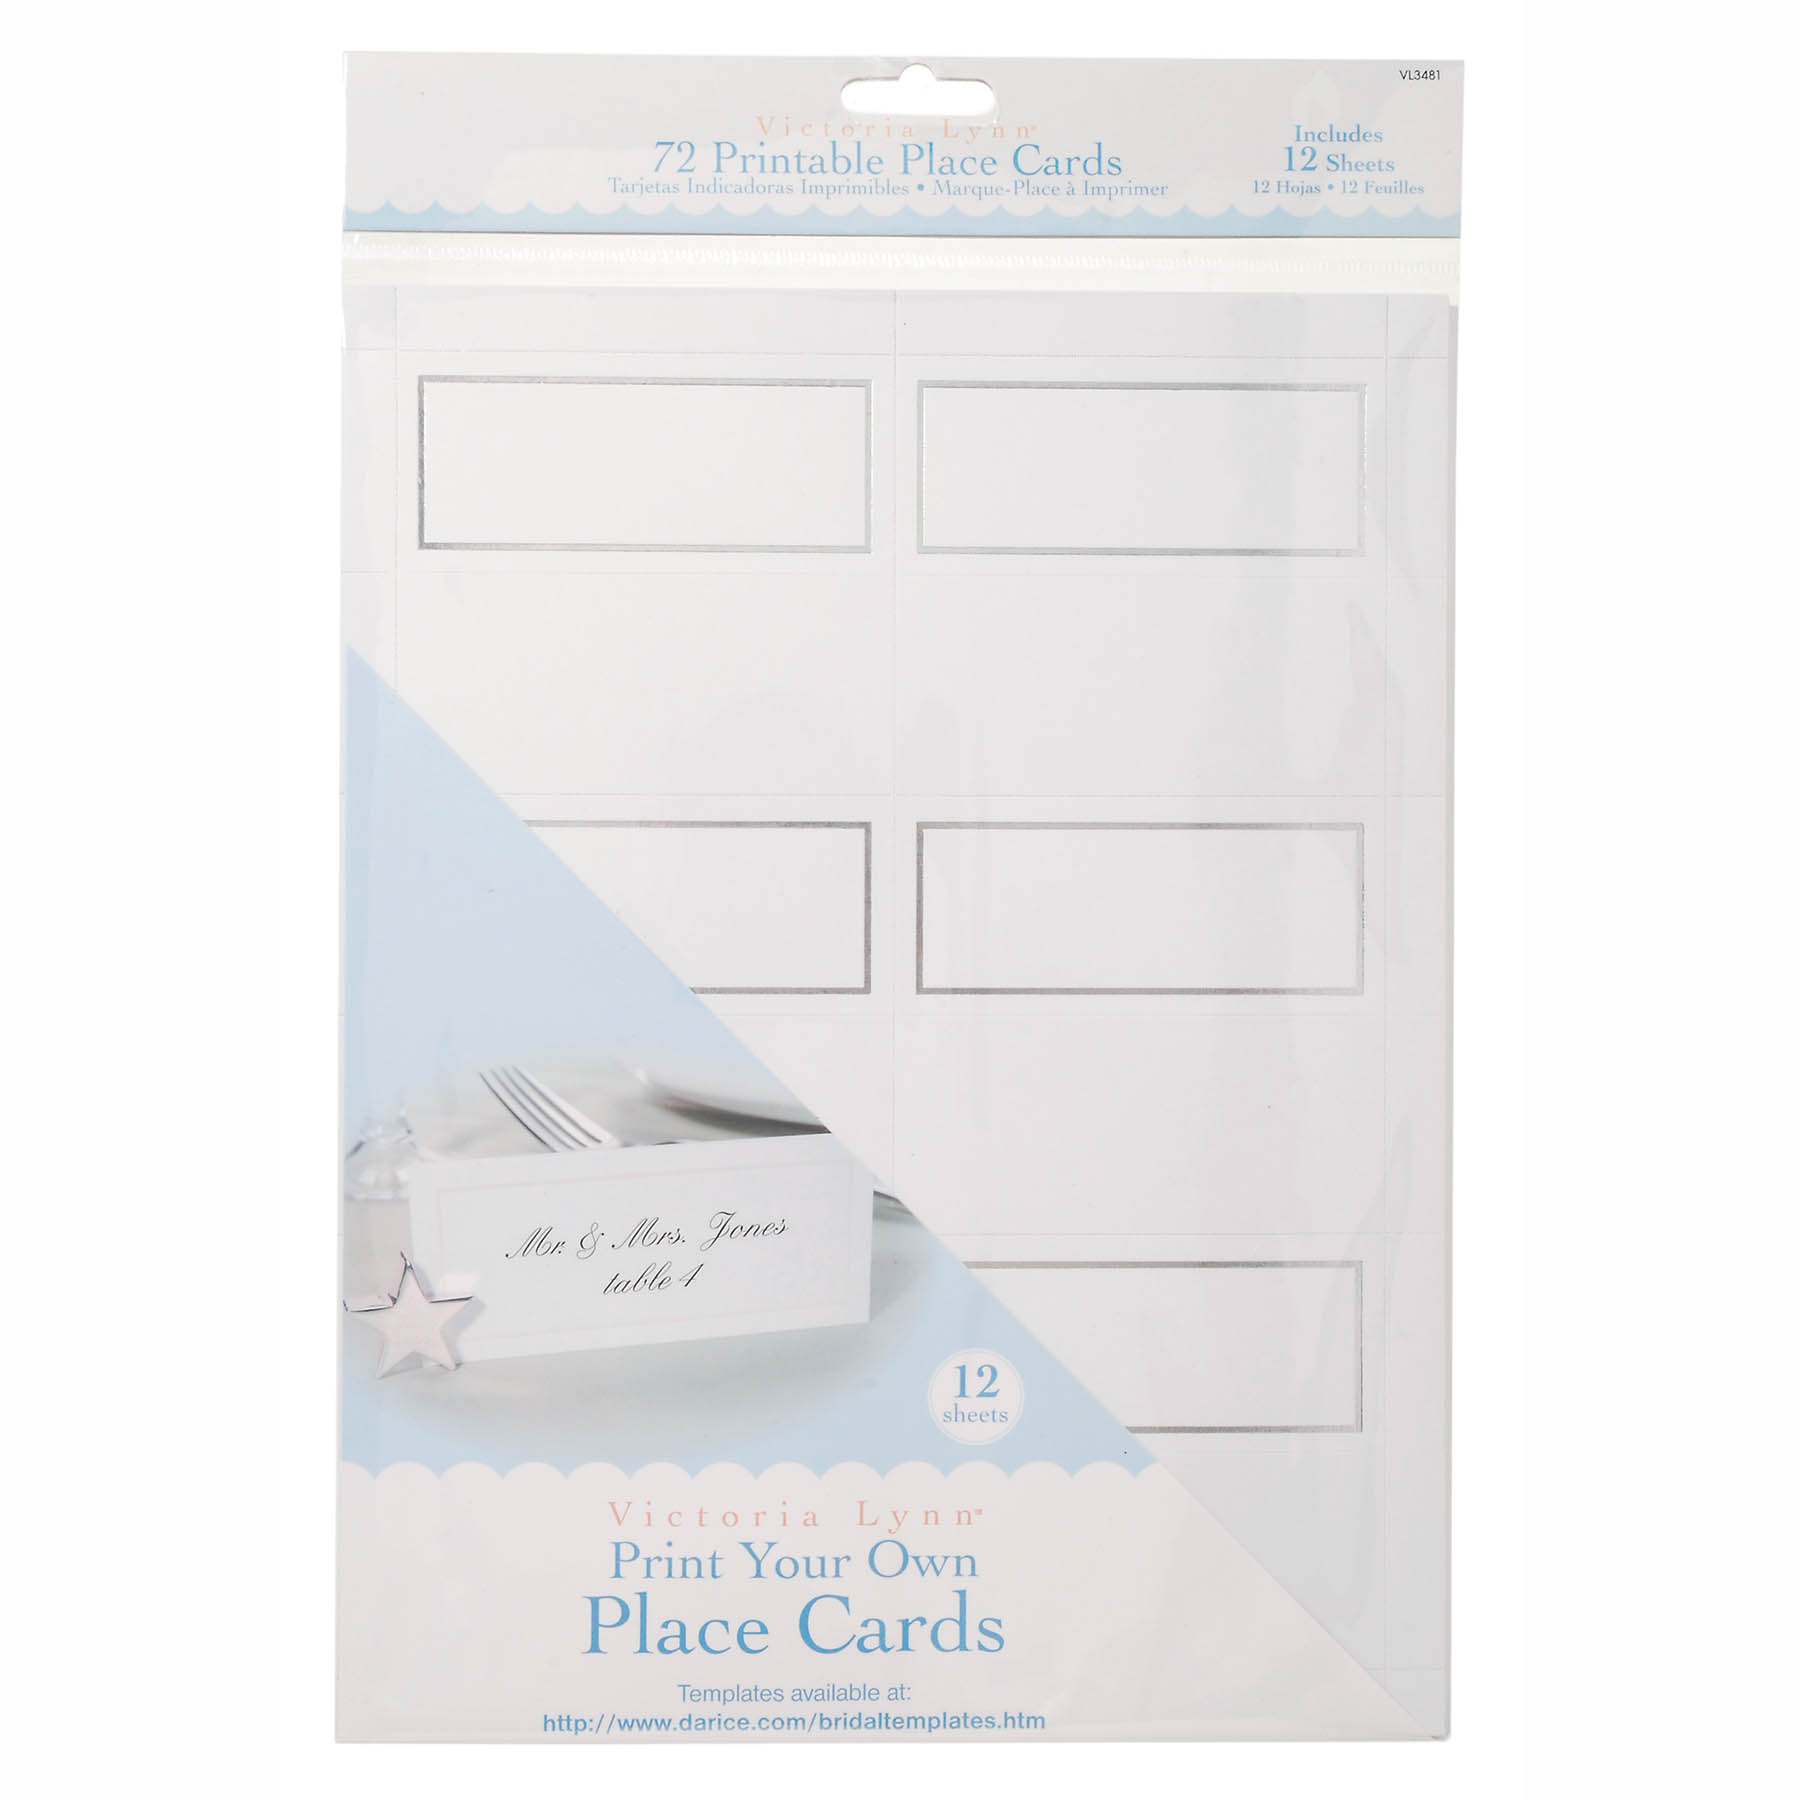 Victoria Lynn Print Your Own Place Cards 72